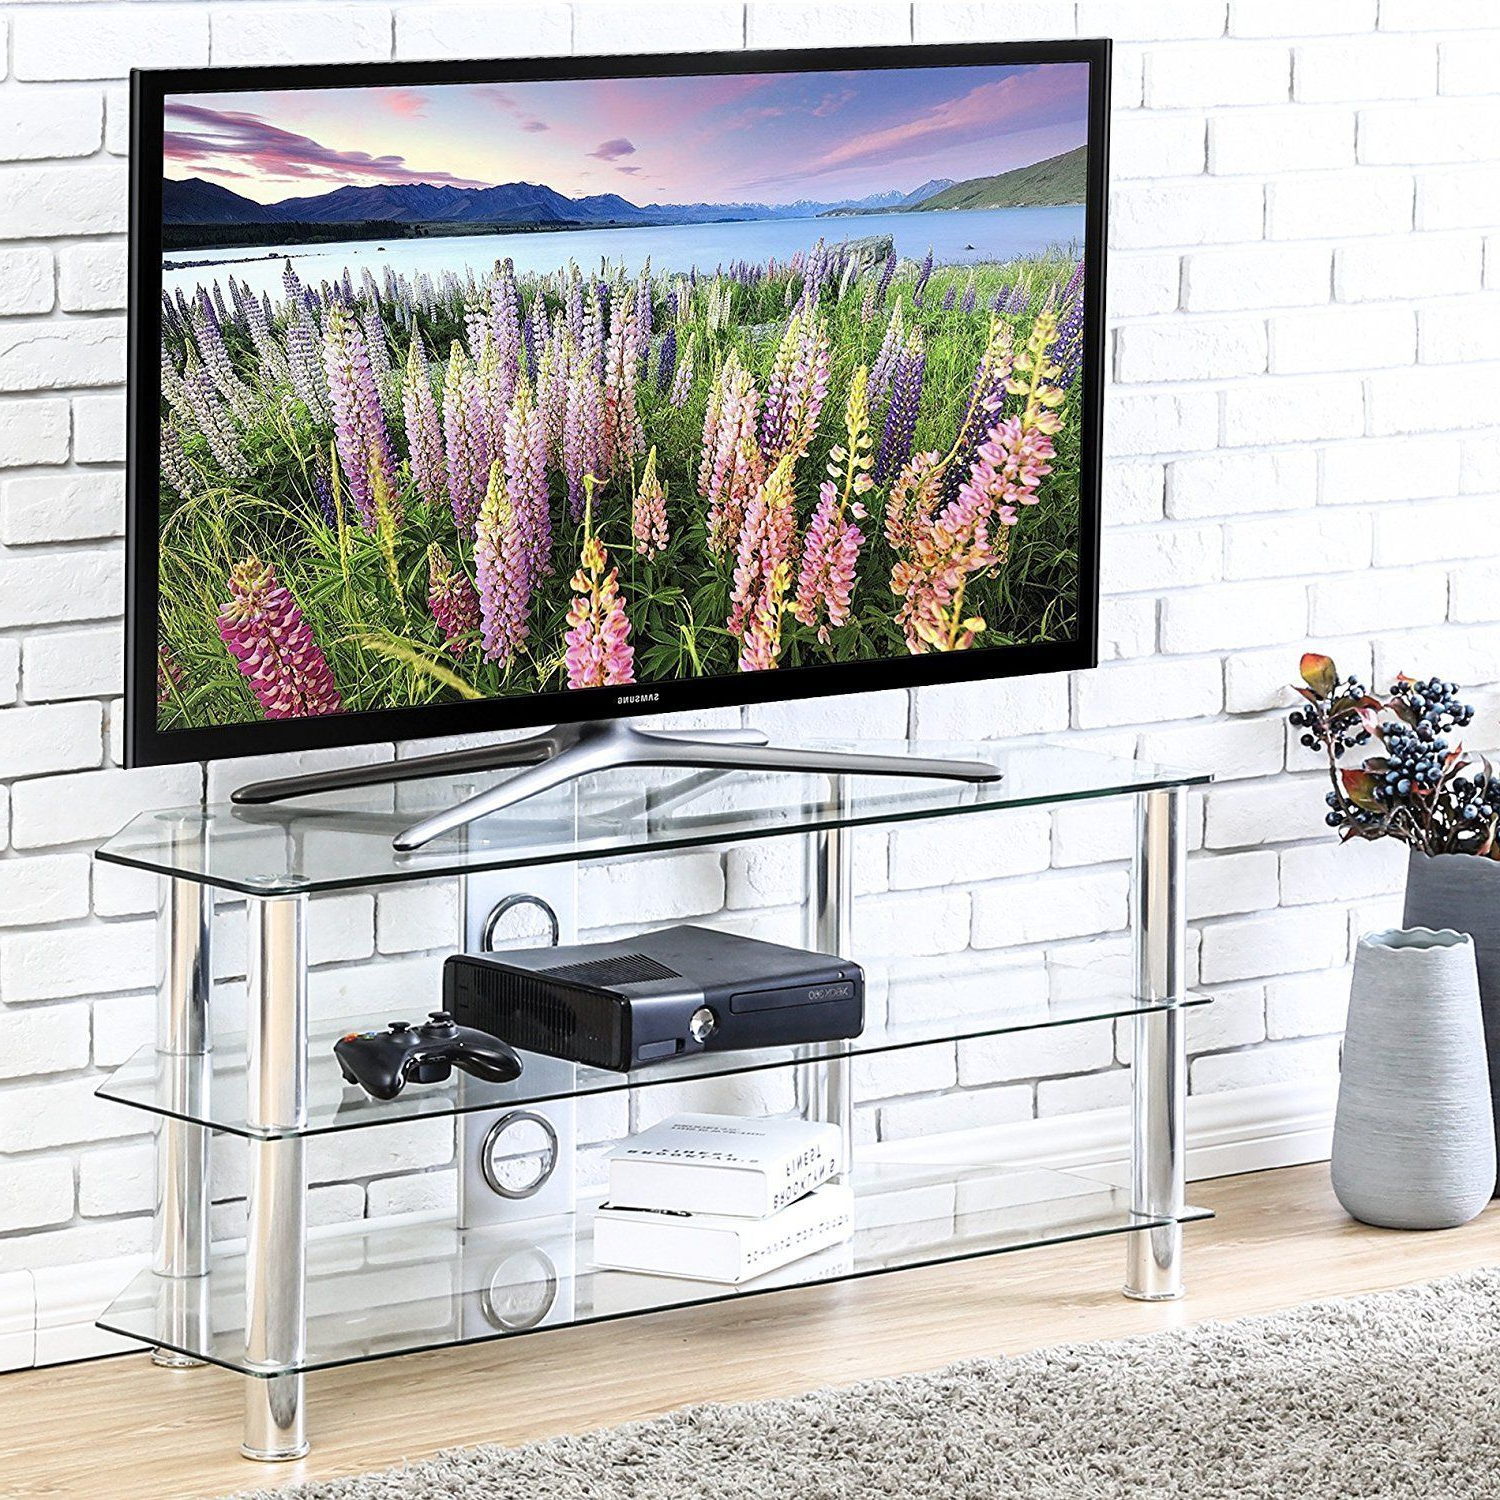 Most Recent Fitueyes Curved Glass Corner Tv Stand For Up To 46Inch Chrome Legs For Corner Tv Stands For 46 Inch Flat Screen (View 14 of 20)